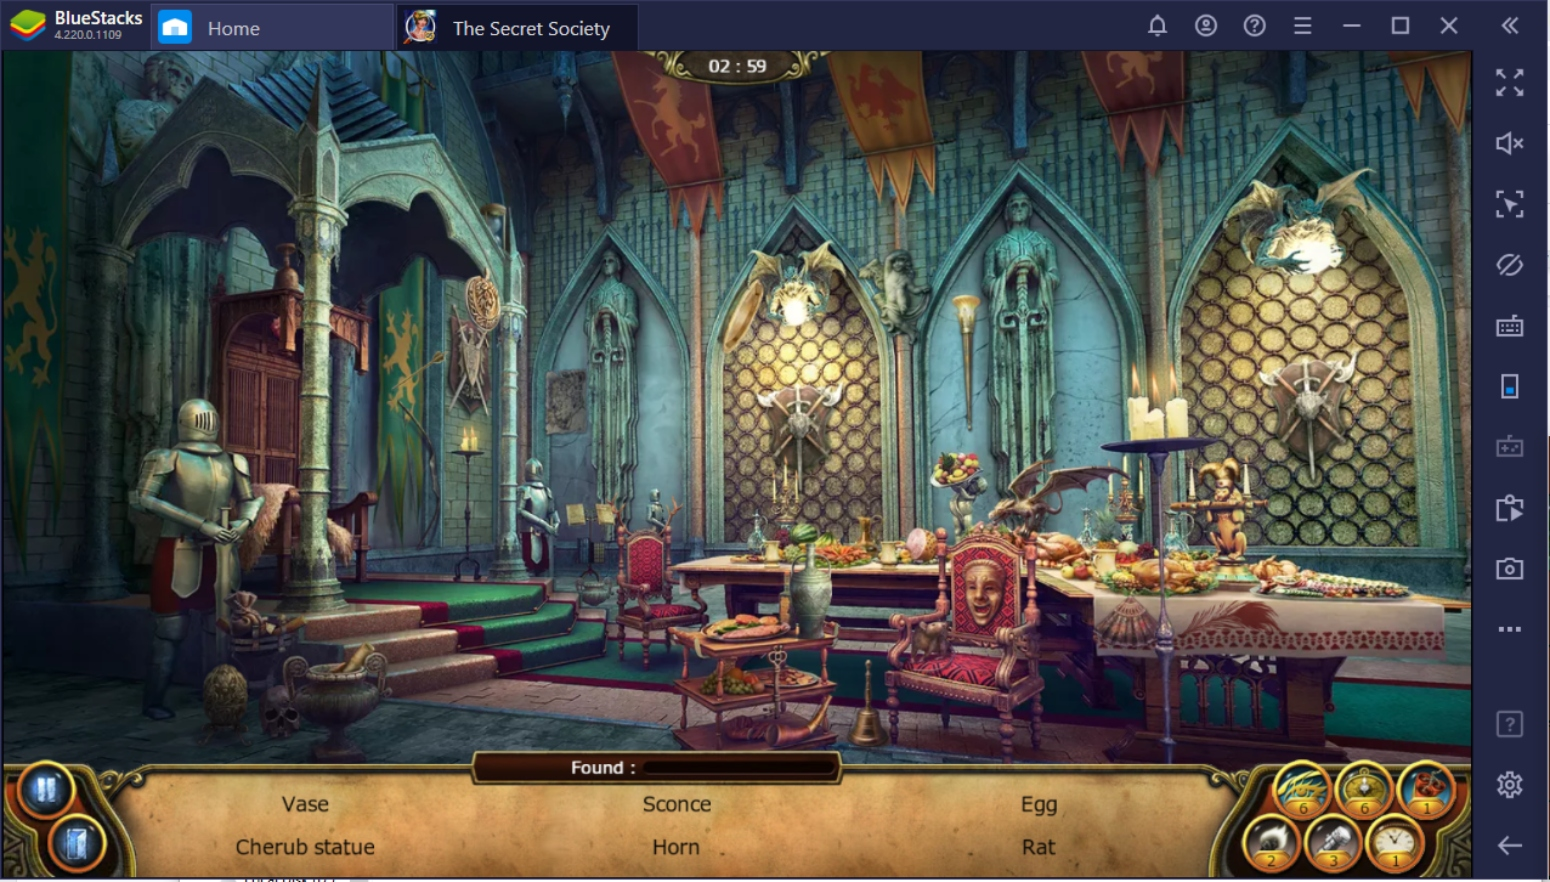 The Secret Society on PC – Tips and Tricks to Solving Puzzles